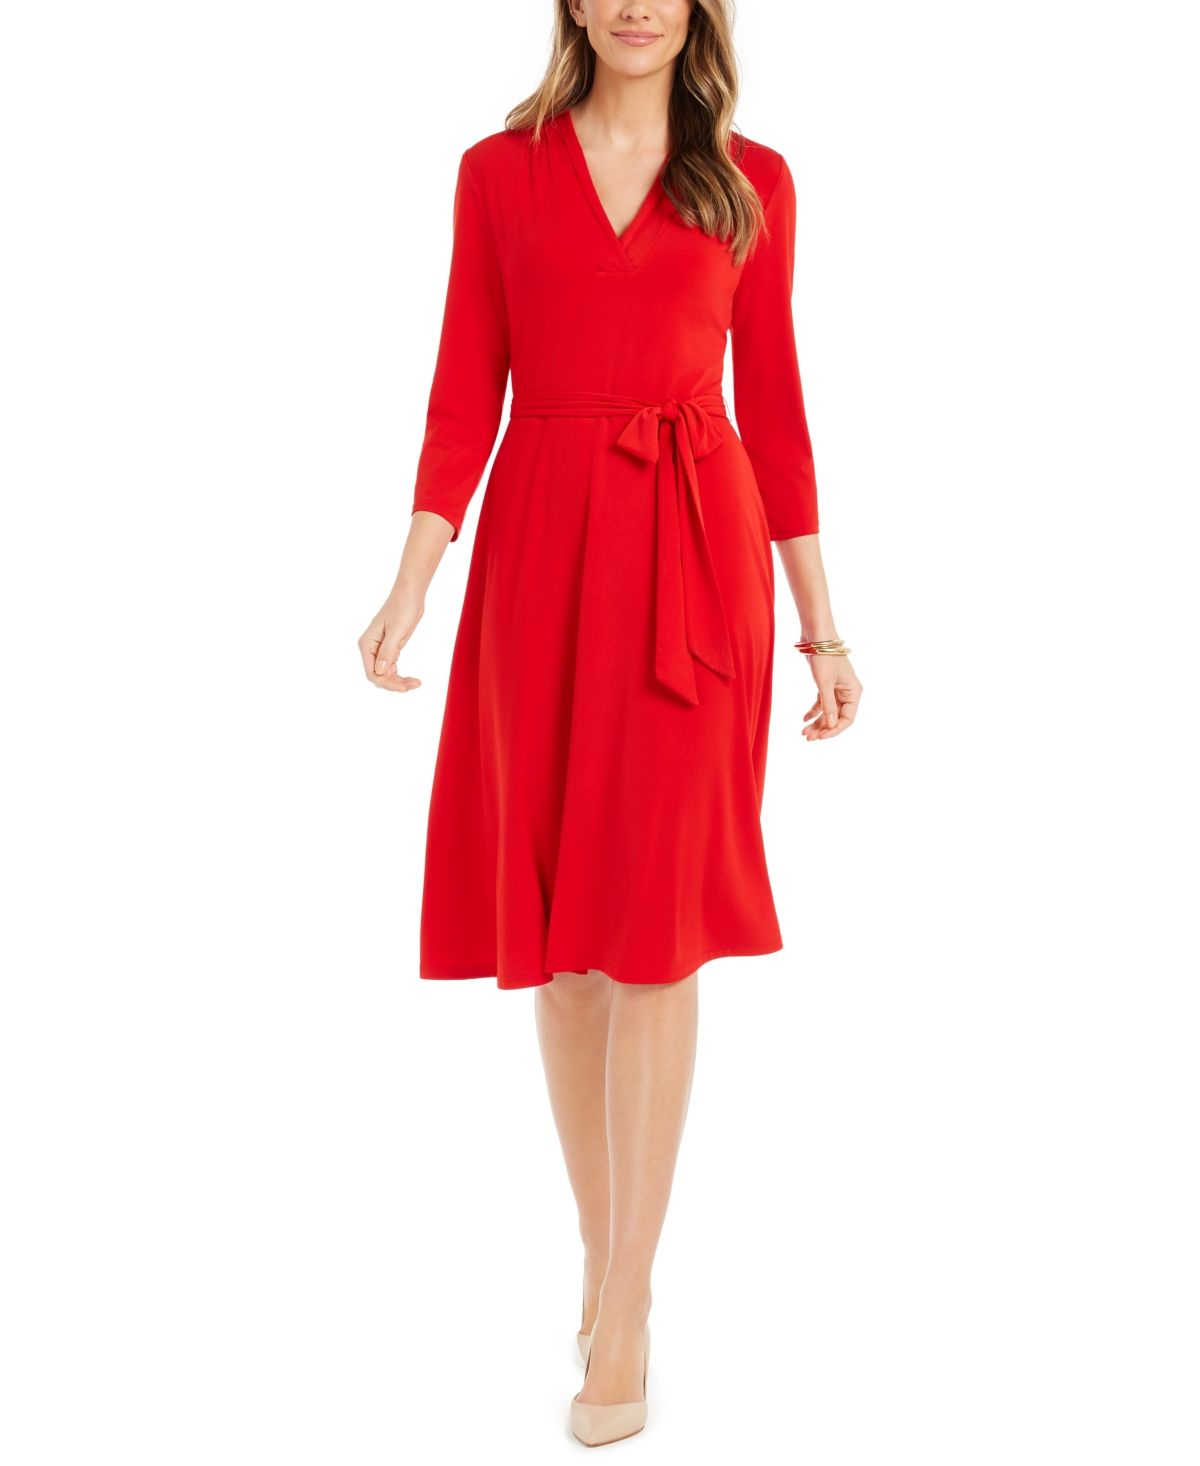 Charter Club 3 4 Sleeve Midi Dress Created For Macy S Ravishing Red In 2021 Midi Dress With Sleeves Red Dress Casual Red Dresses Classy [ 1466 x 1200 Pixel ]